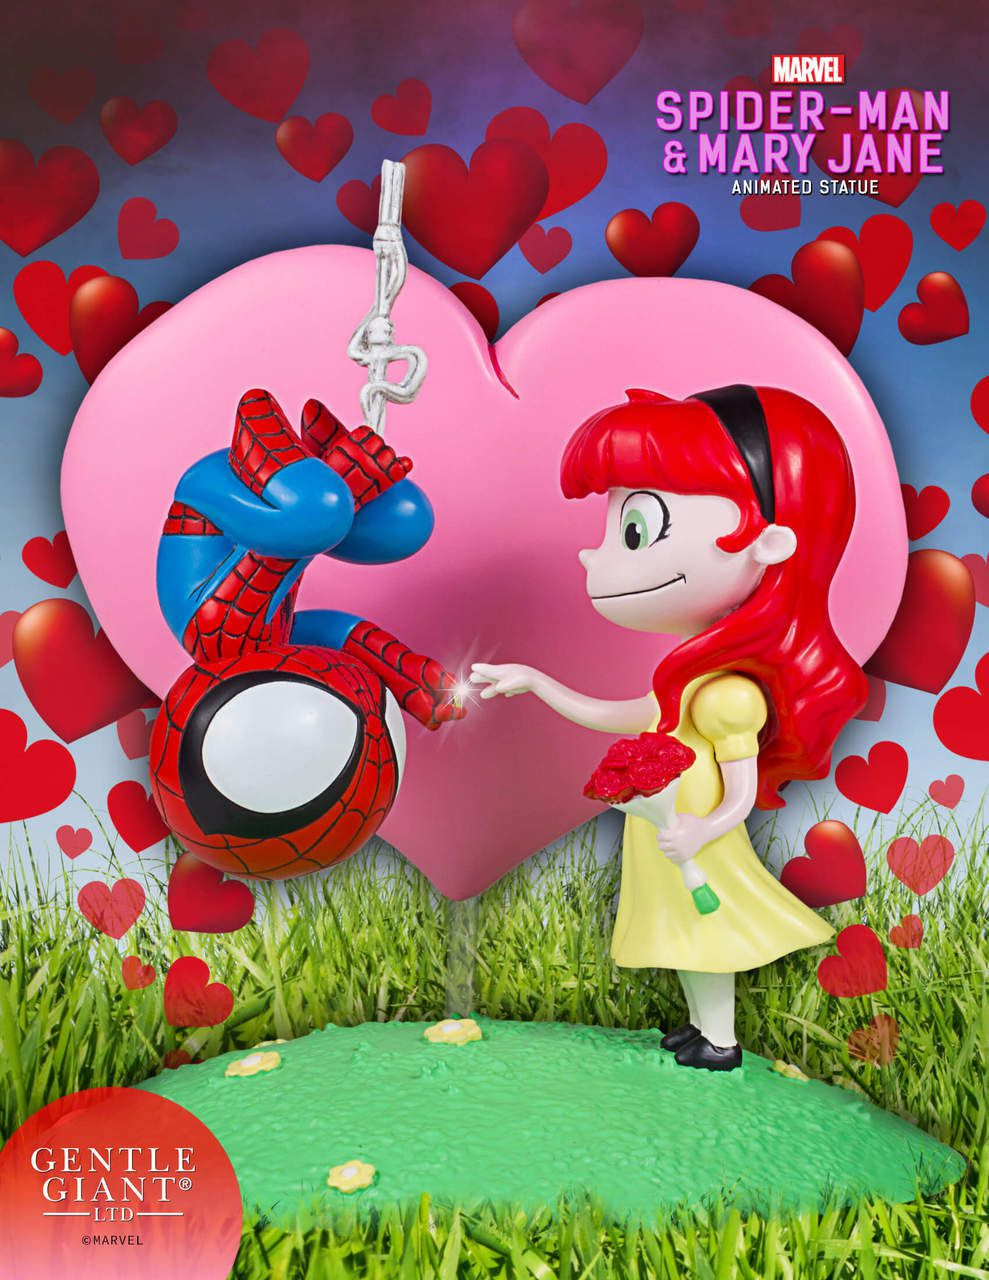 Gentle Giant Homem Aranha & Mary Jane Skottie Young Animated Statue  - Movie Freaks Collectibles